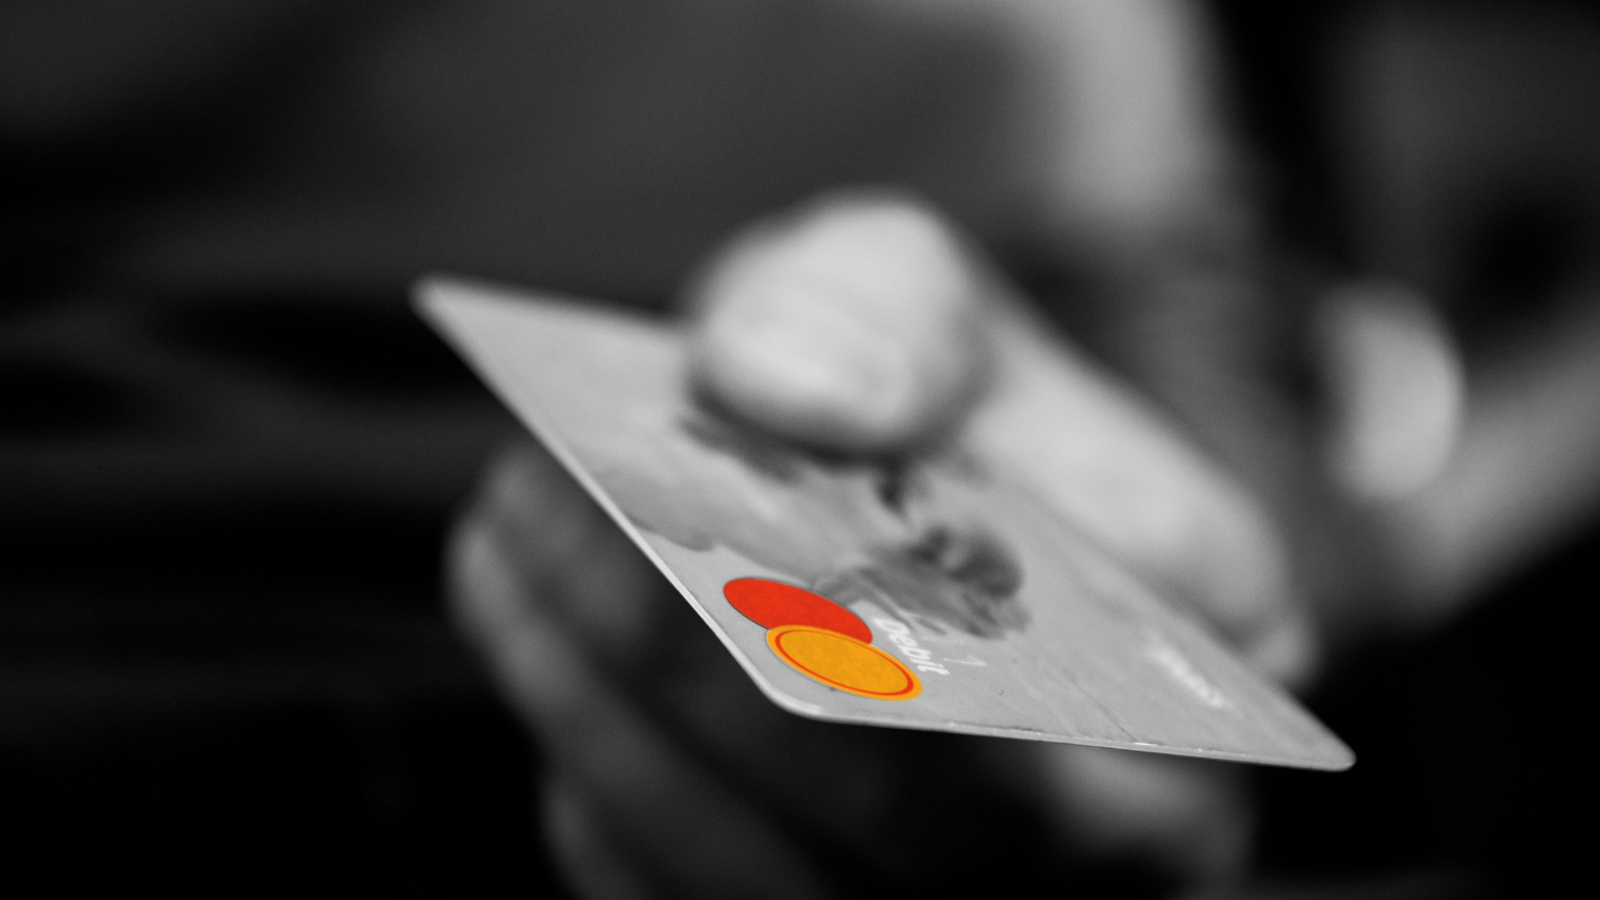 Three New Data Dumps of Credit Card Info for Sale on Hacking